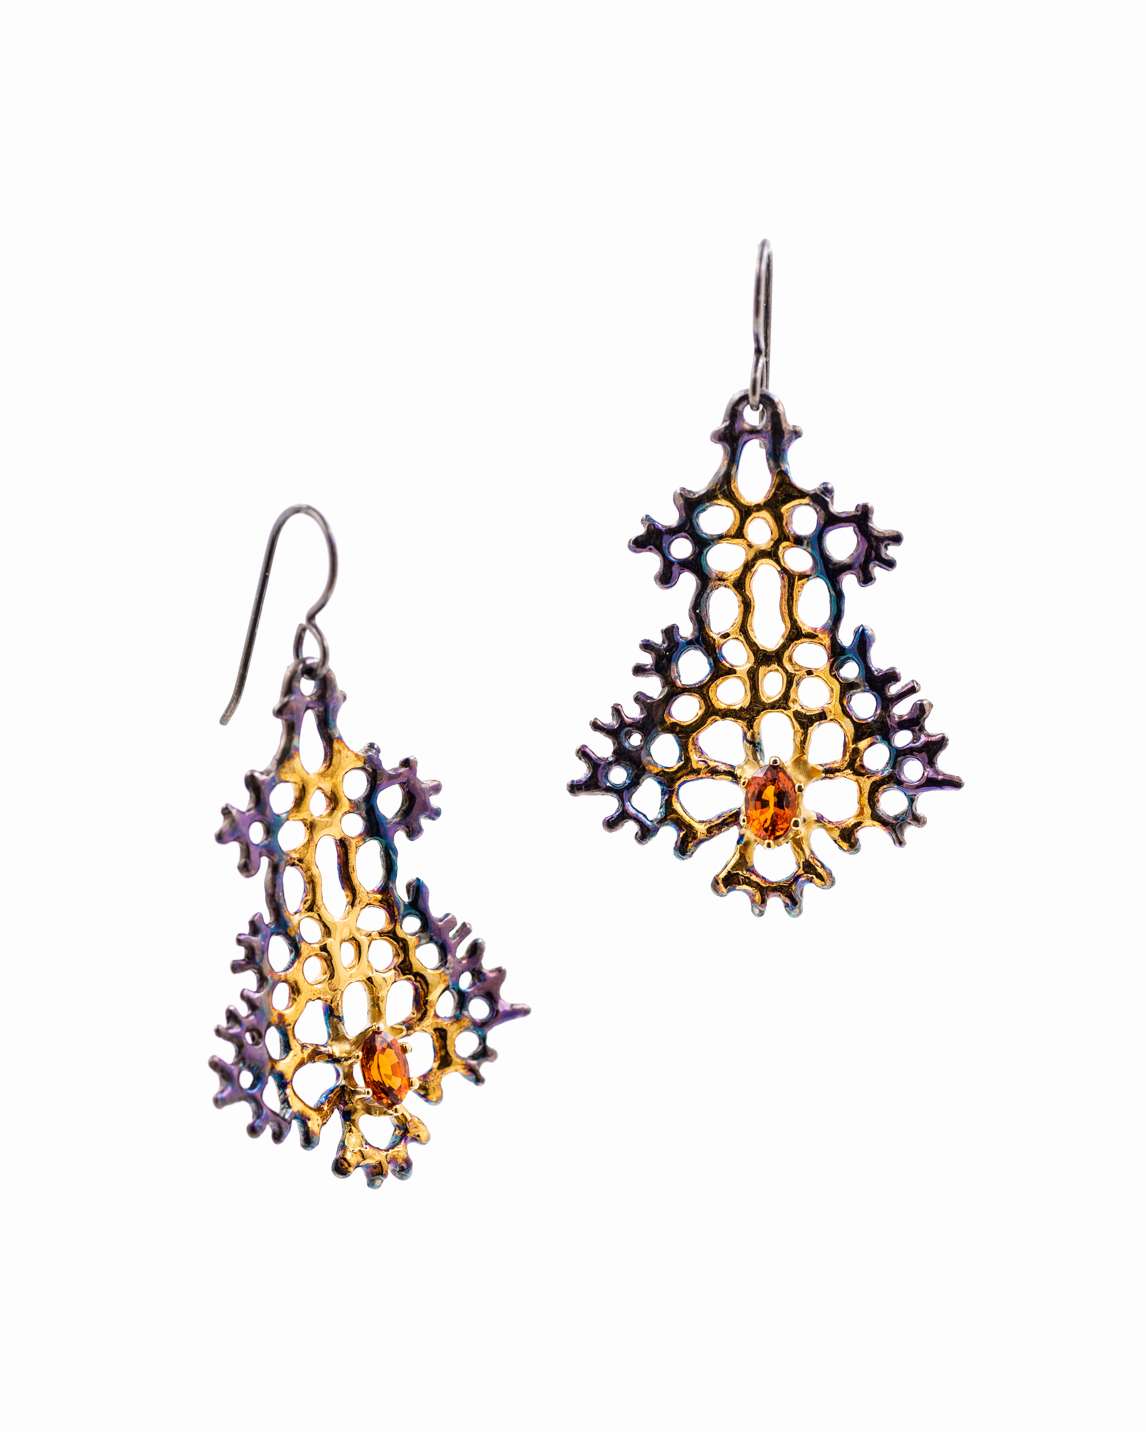 Large Radial Earrings luke maninov hammond.jpg